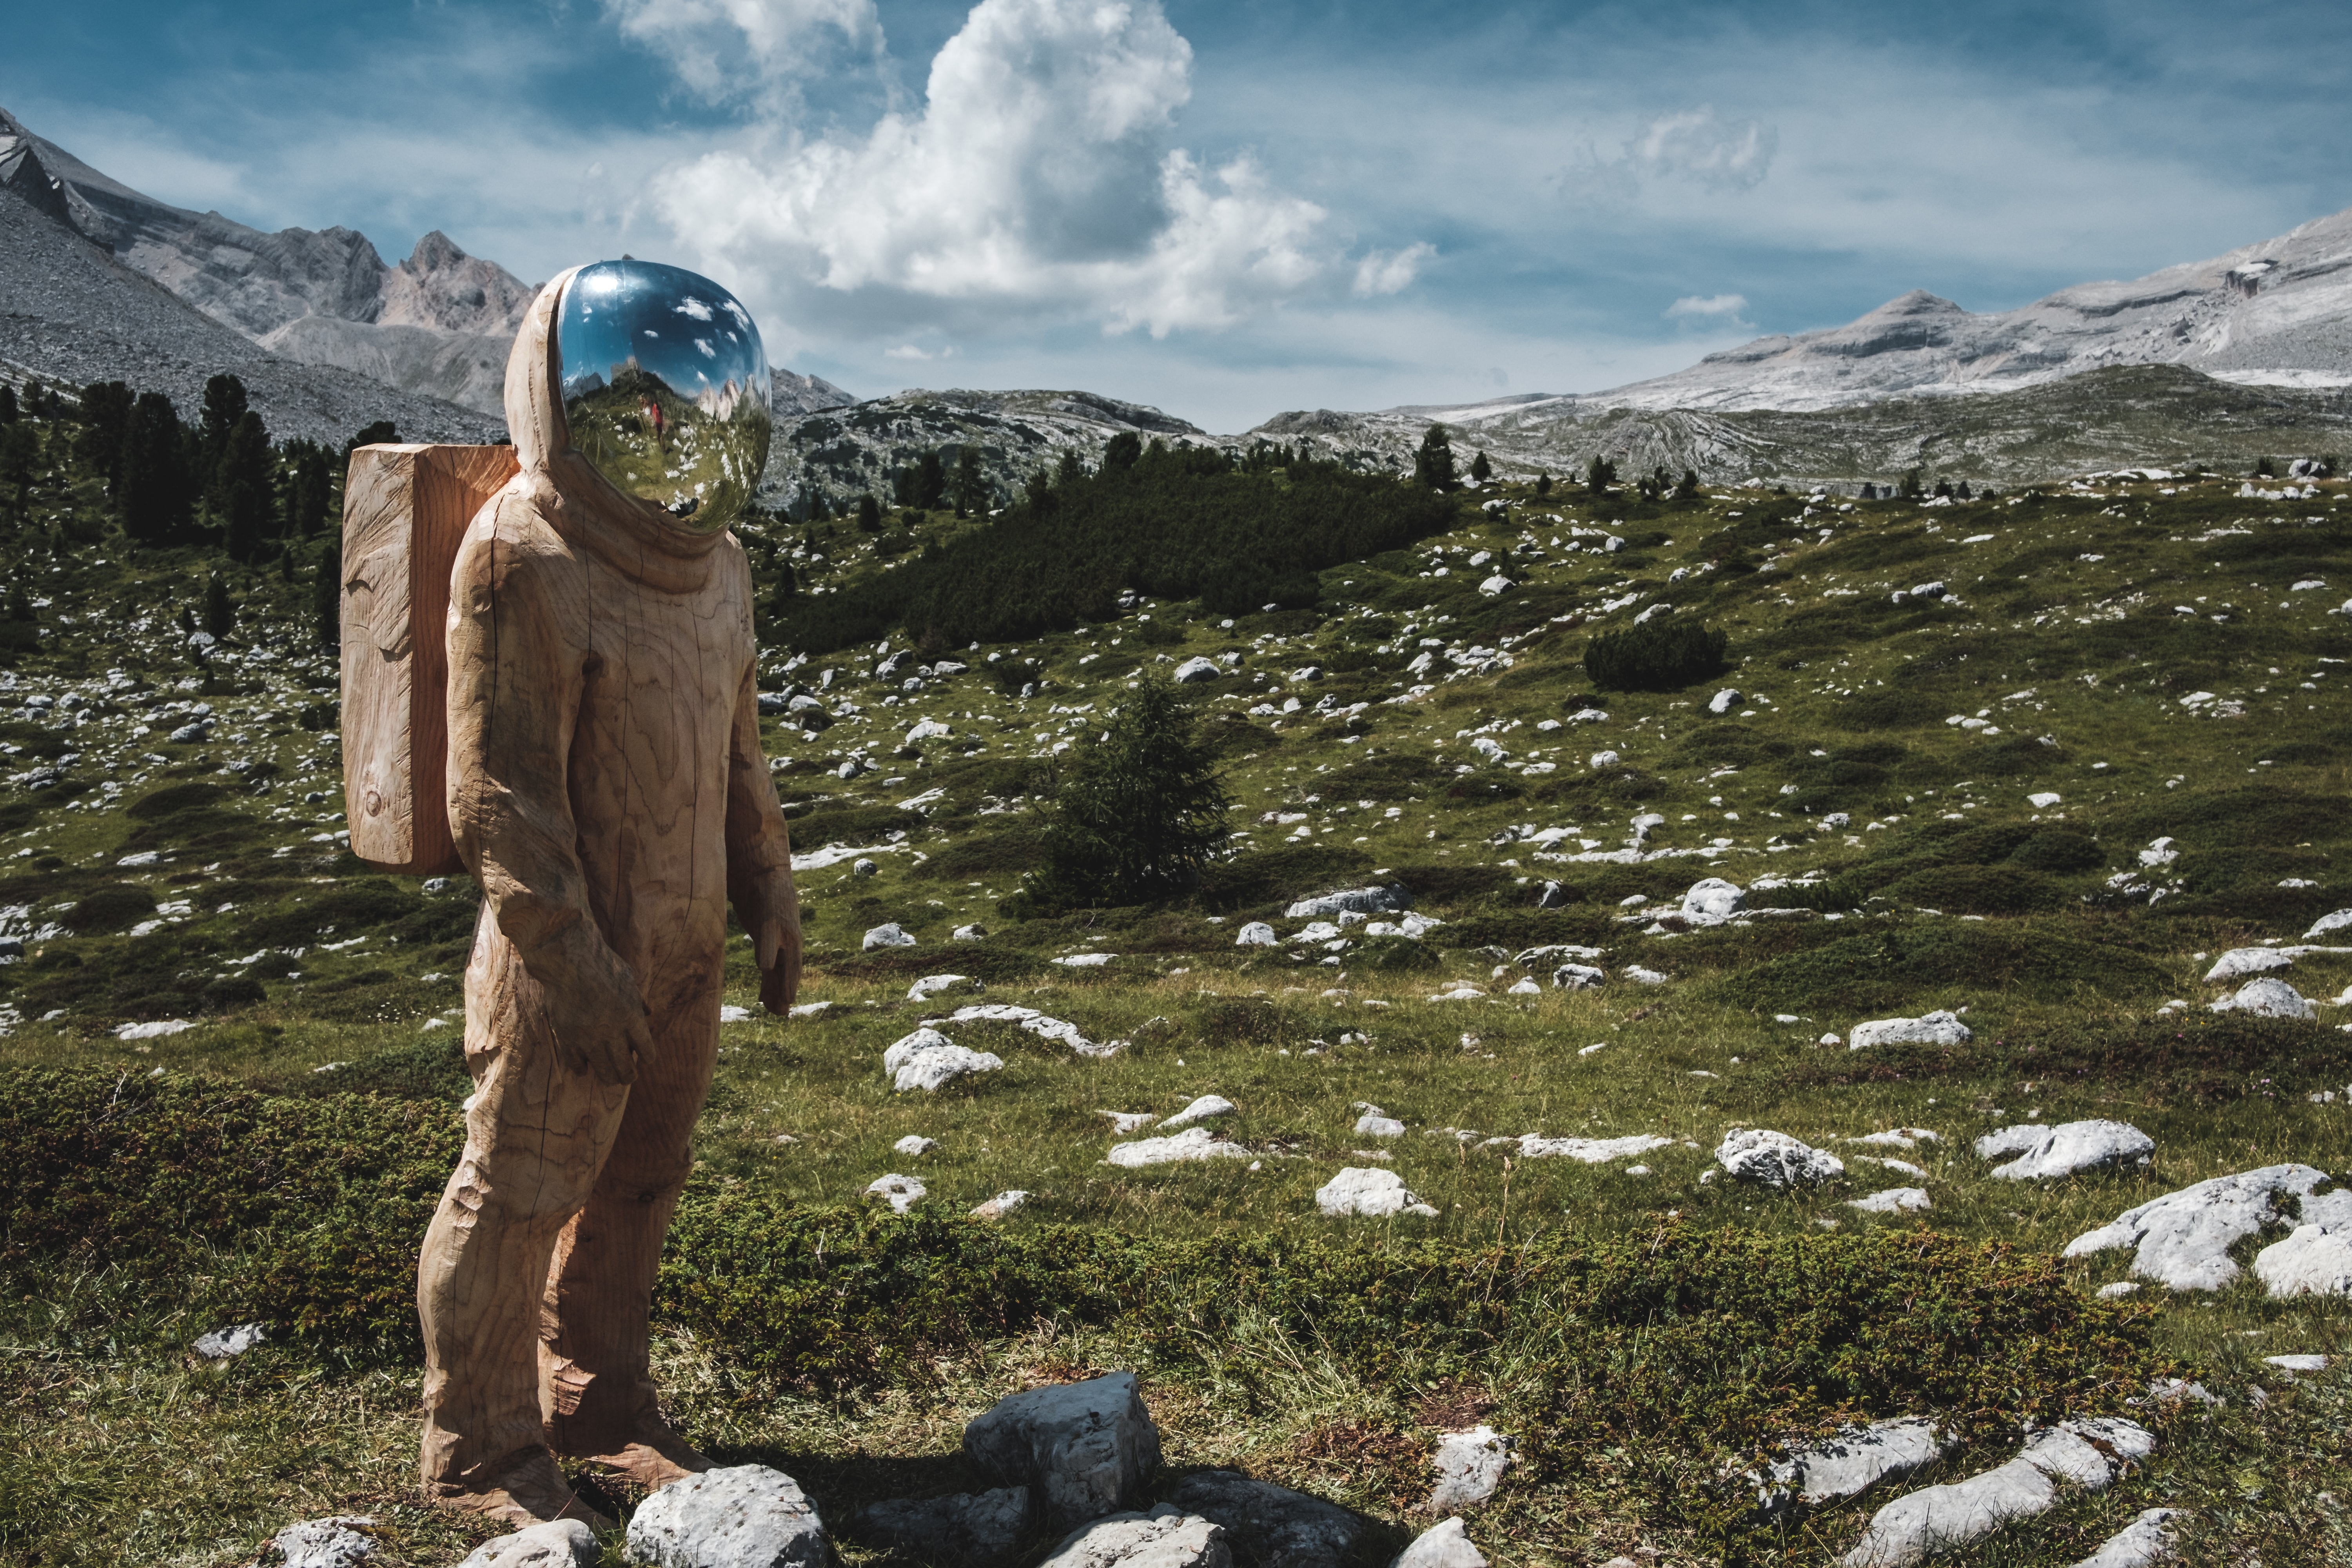 An astronaut looking person in a hazmat suit backpacking in the mountains.